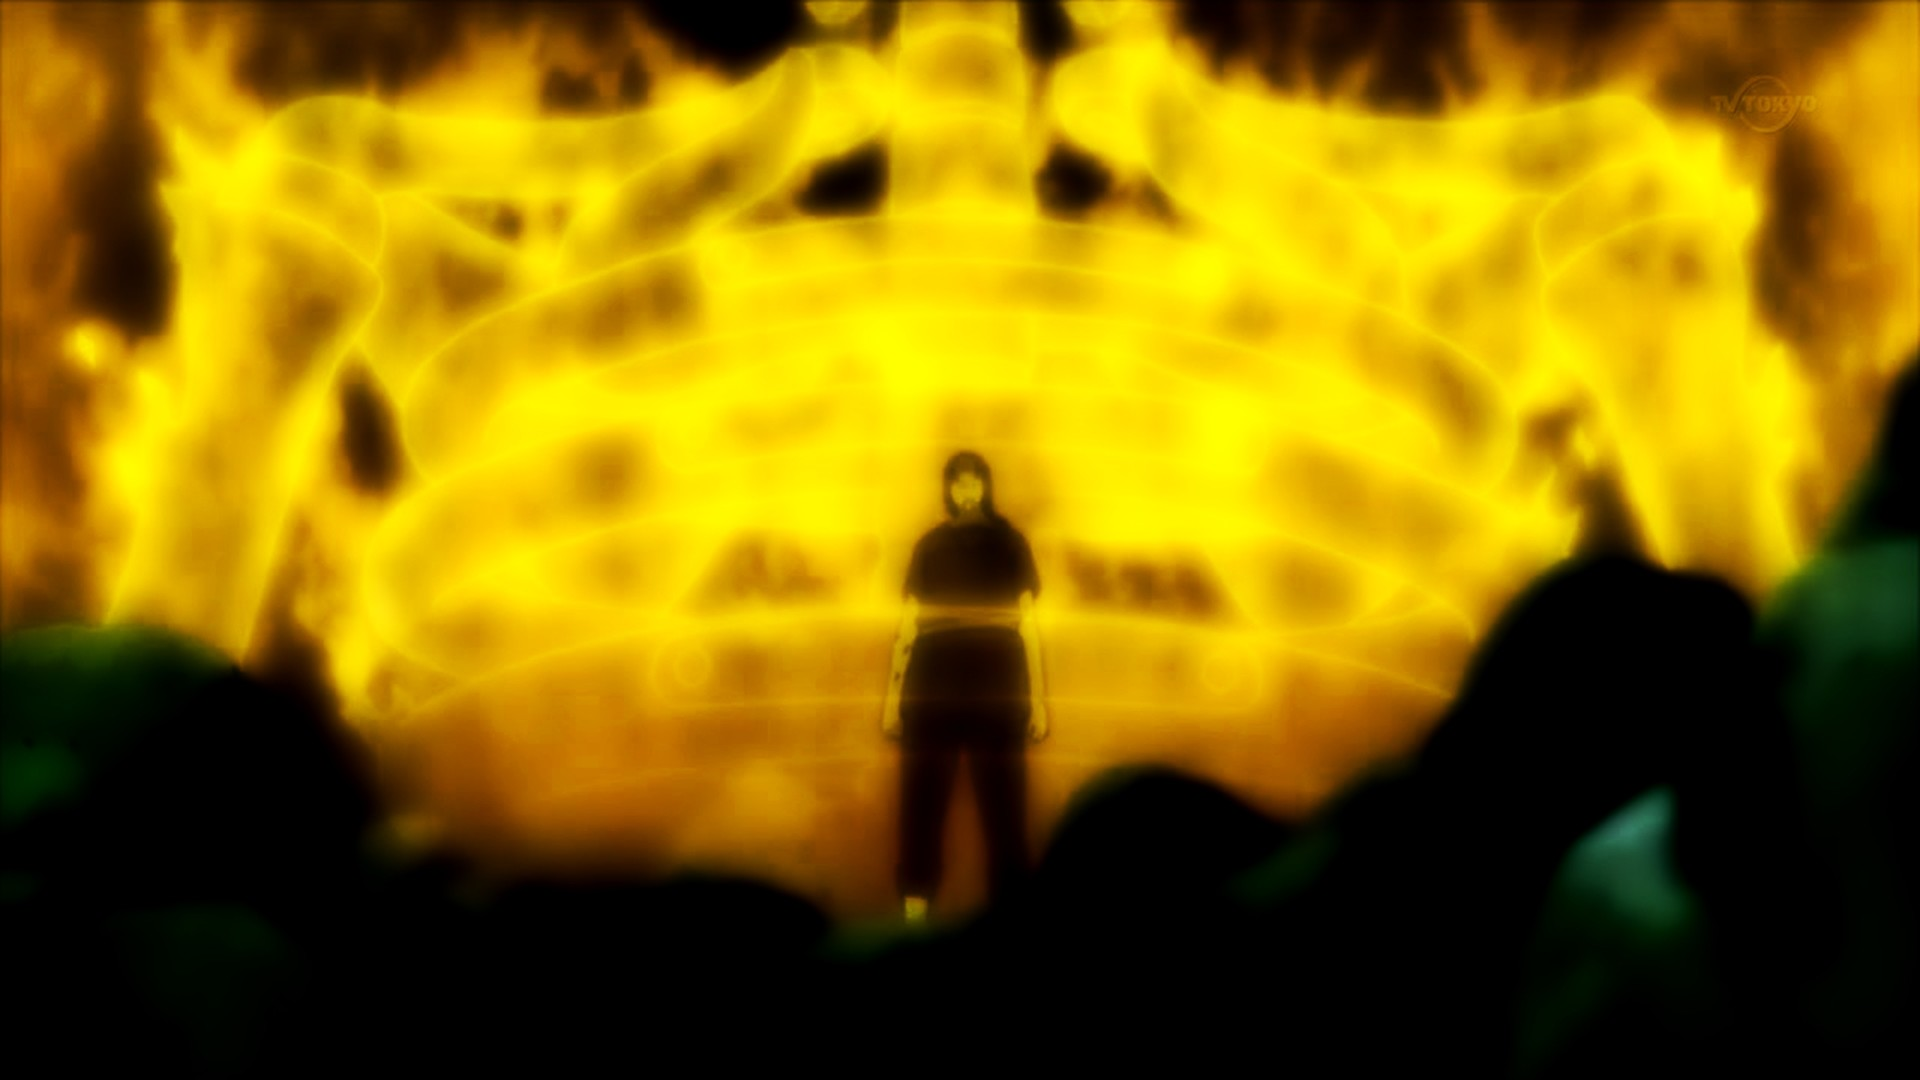 1920x1080 Itachi's Holy Incomplete Susanoo by DarkUchiha7 Itachi's Holy Incomplete  Susanoo by DarkUchiha7